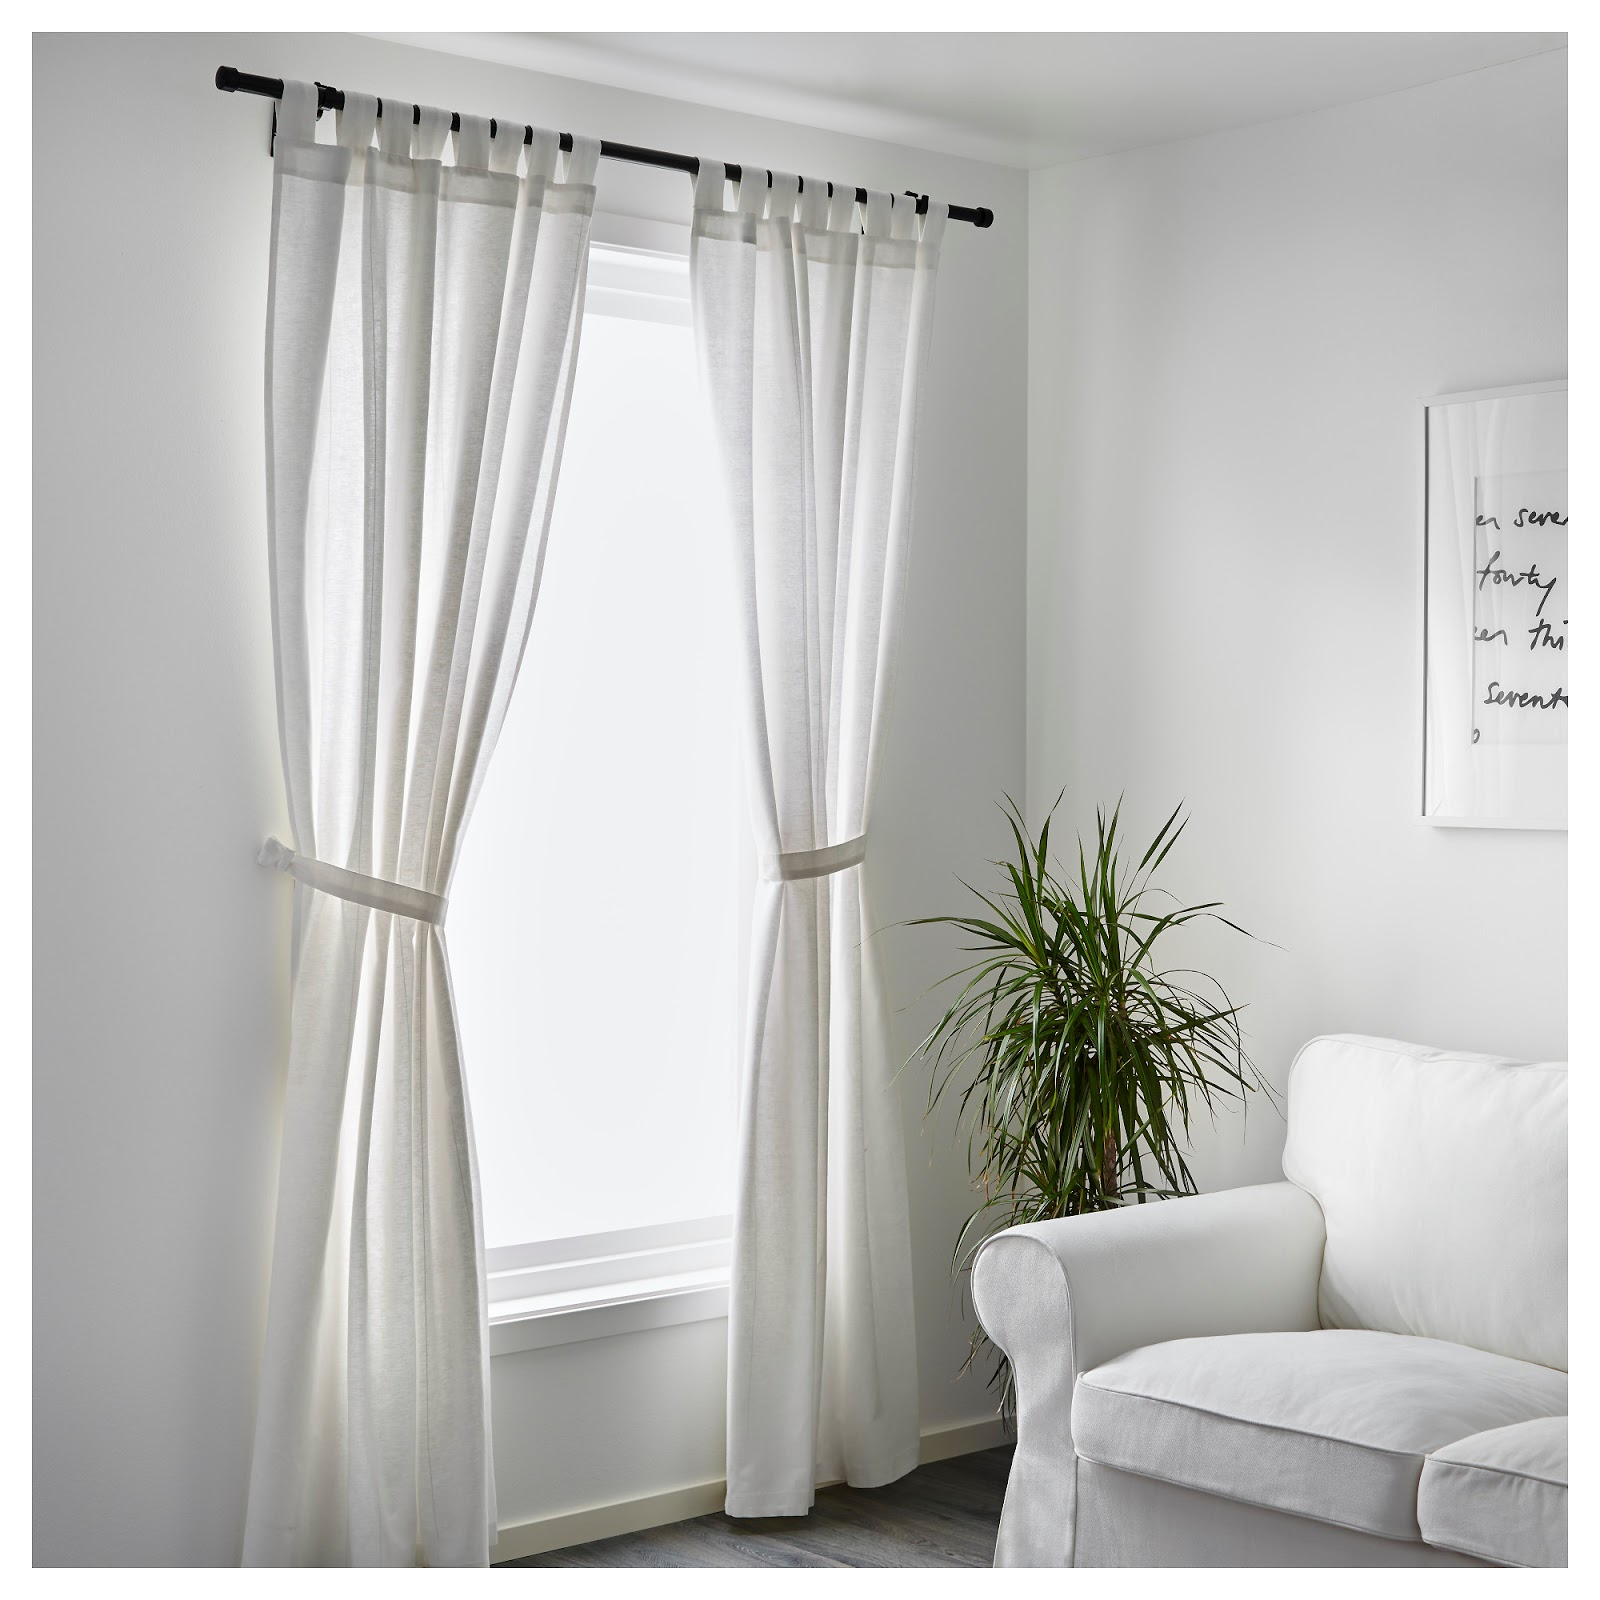 Curtains To Reduce Noise Separate Rooms Window Sill Too Long Short